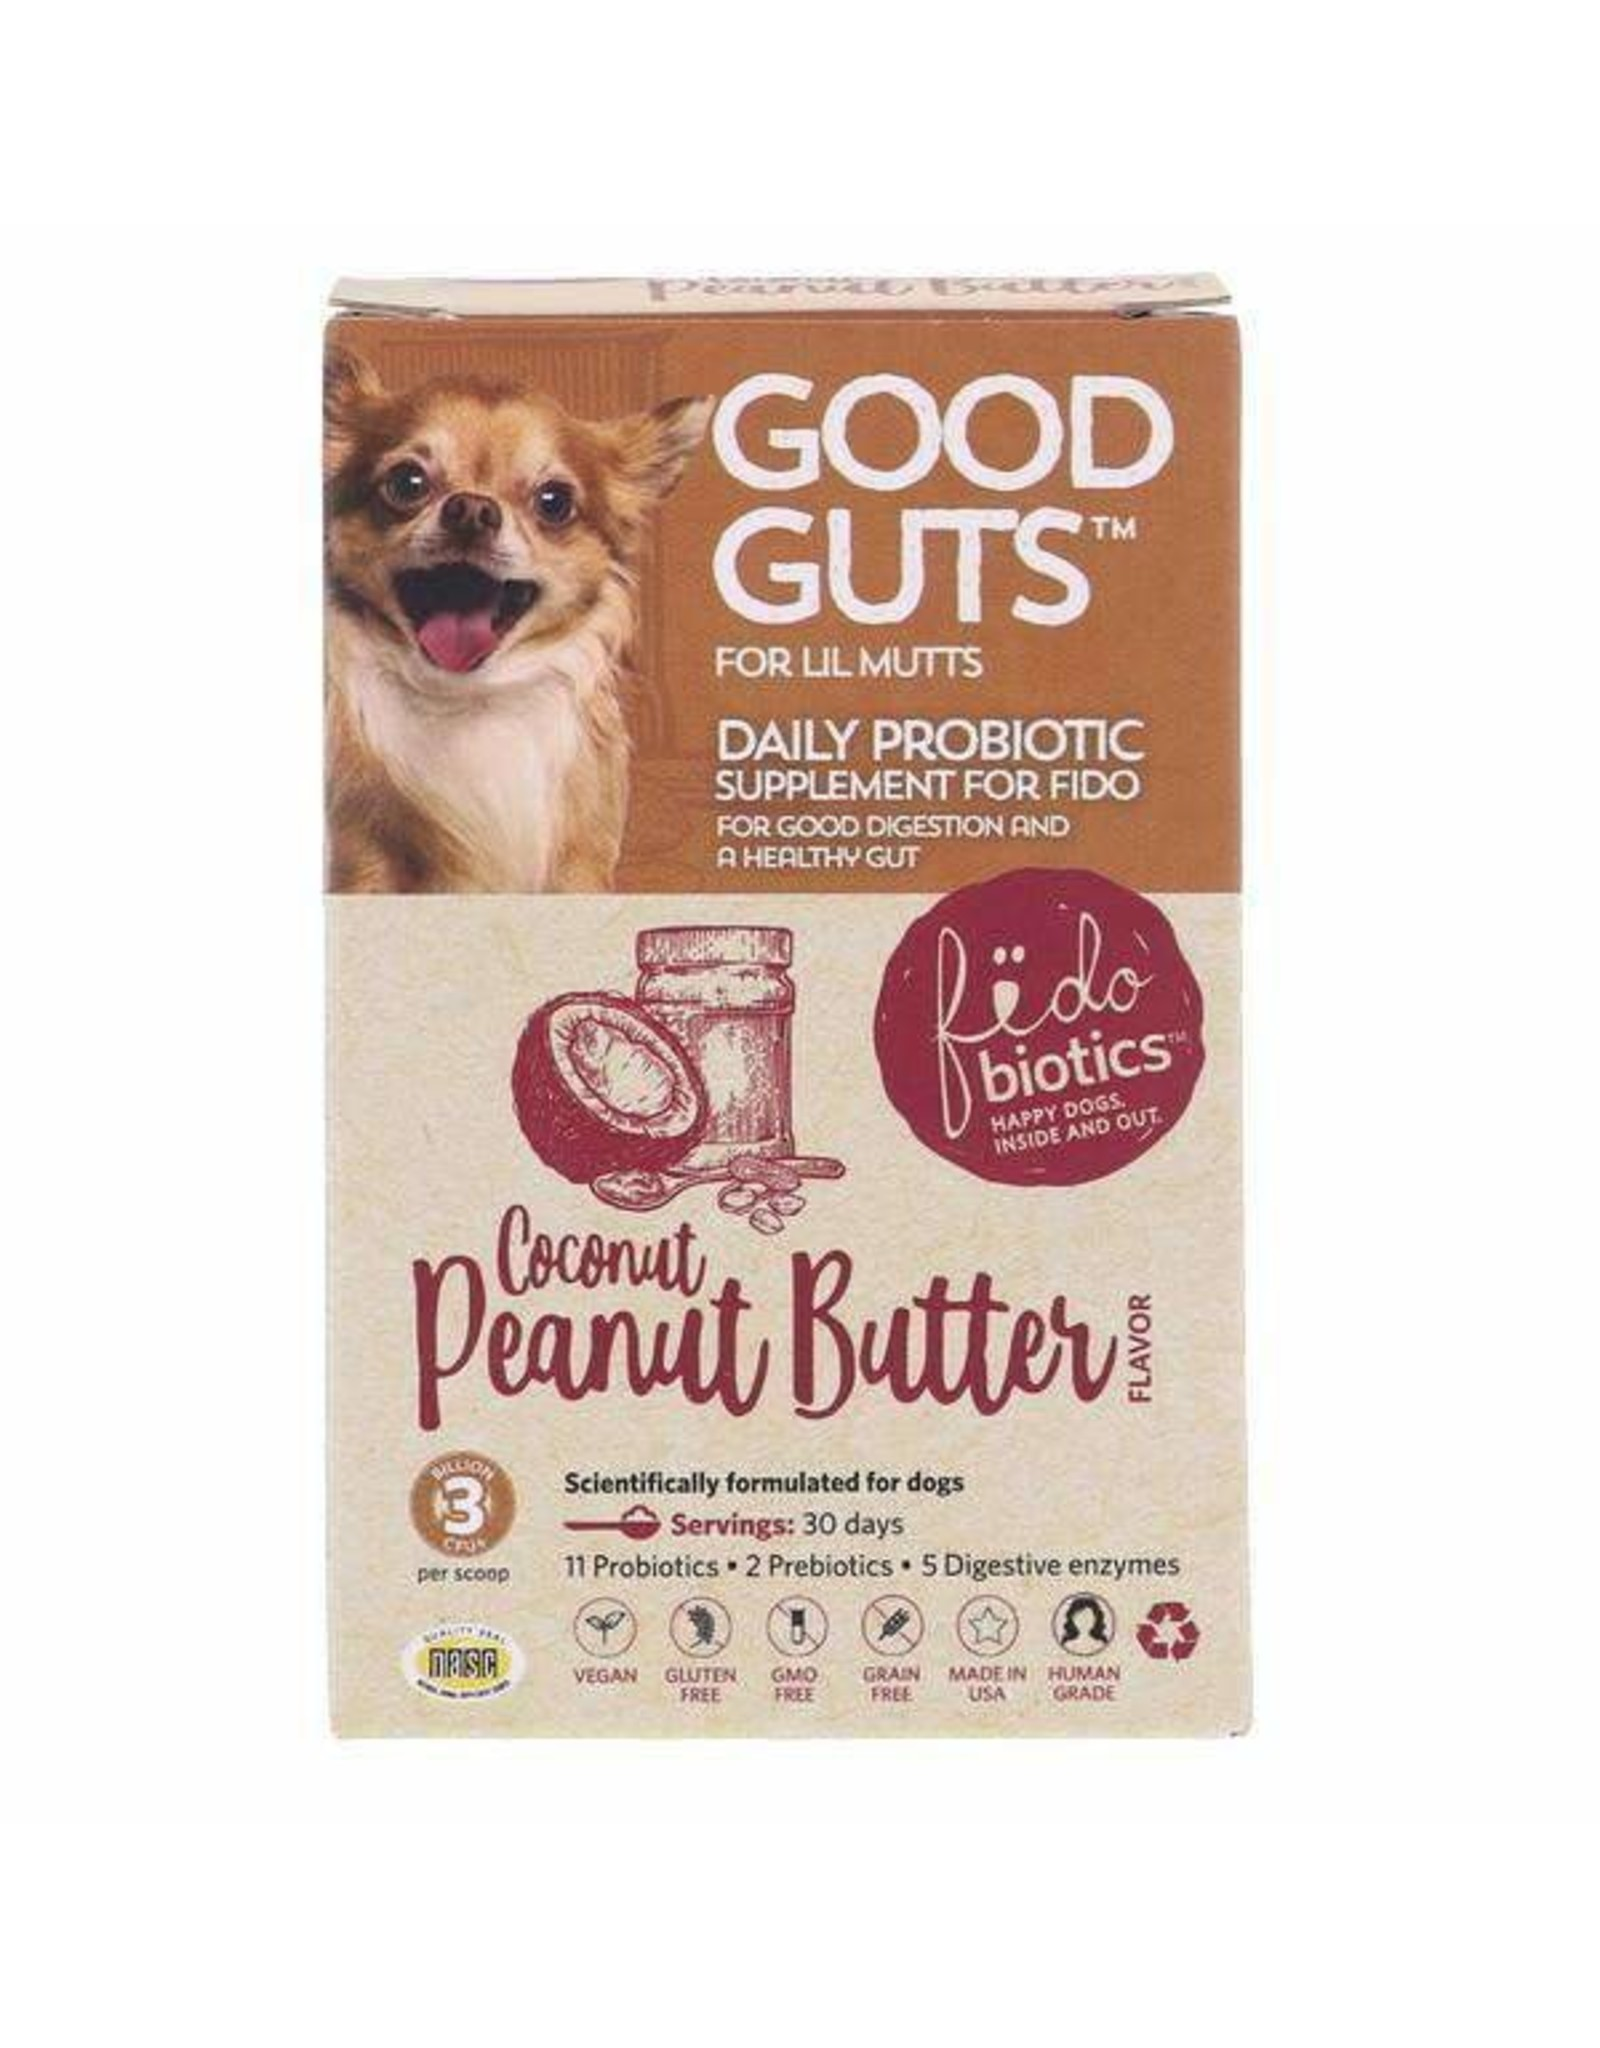 Fidobiotics Fidobiotic: Good Guts Lil Mutts